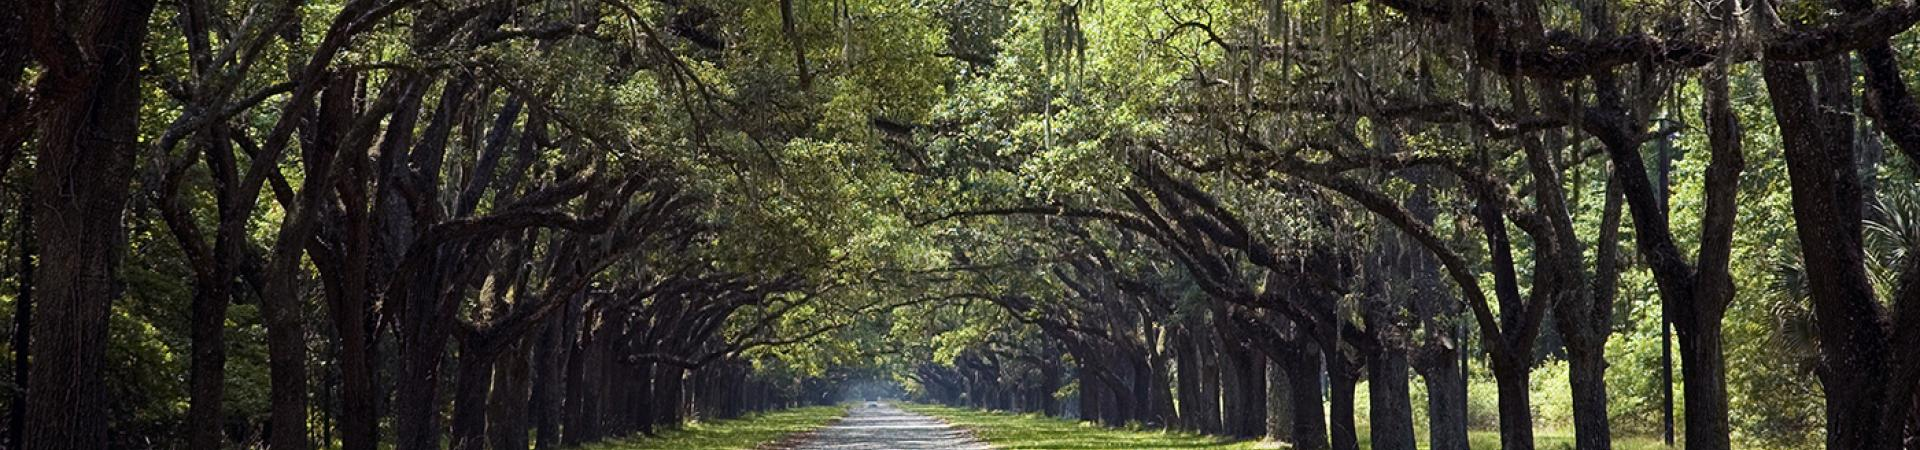 Wormsloe State Historic Site | State Parks & Historic Sites